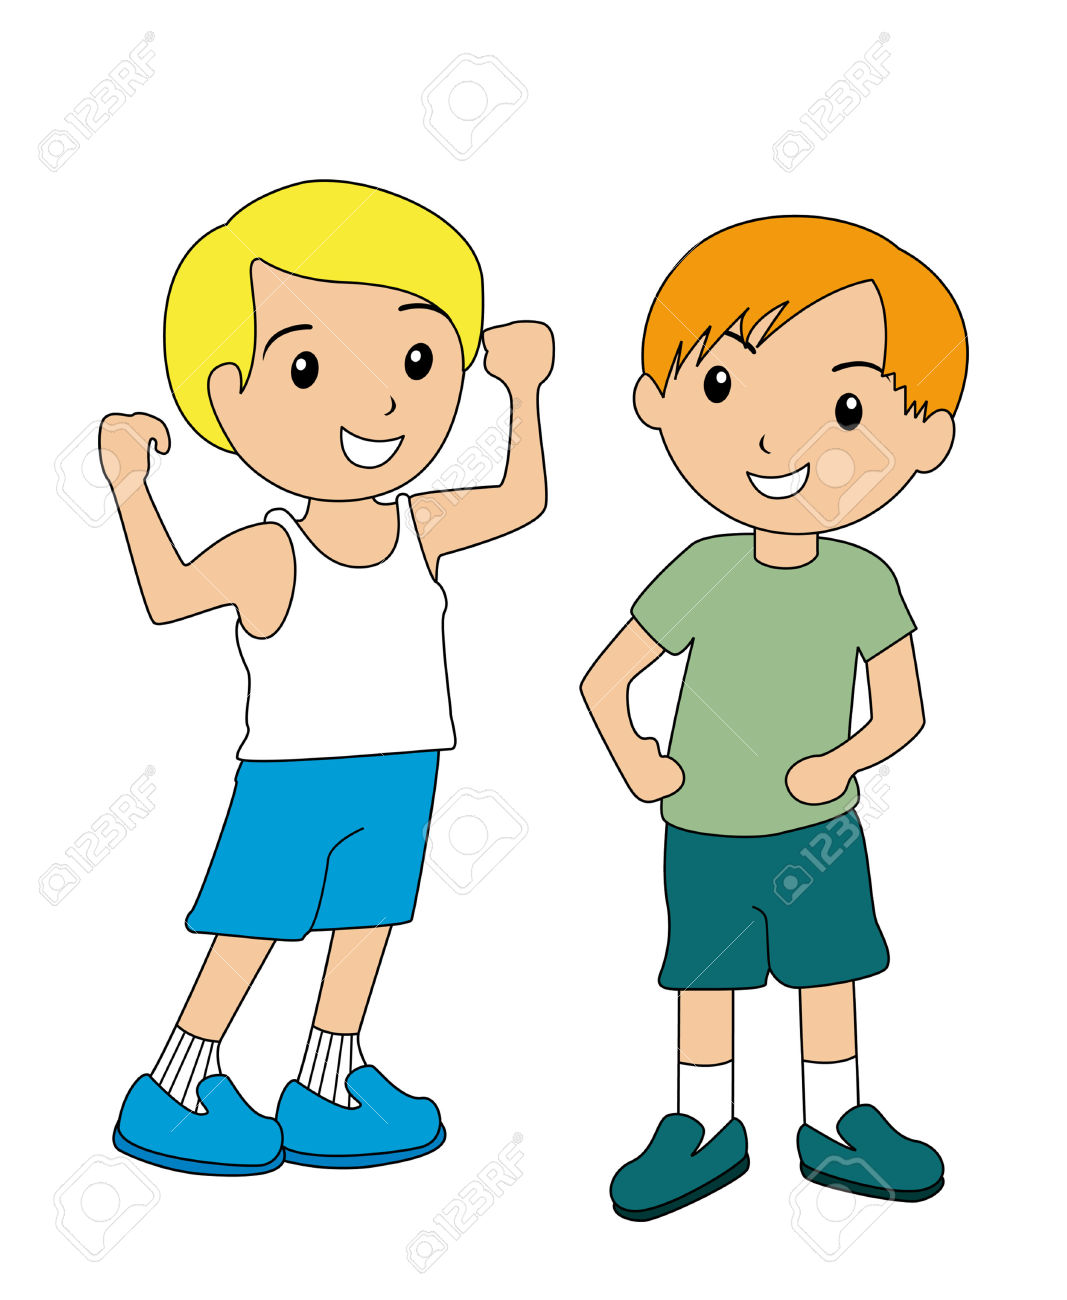 picture transparent Kid free download best. Strong kids clipart